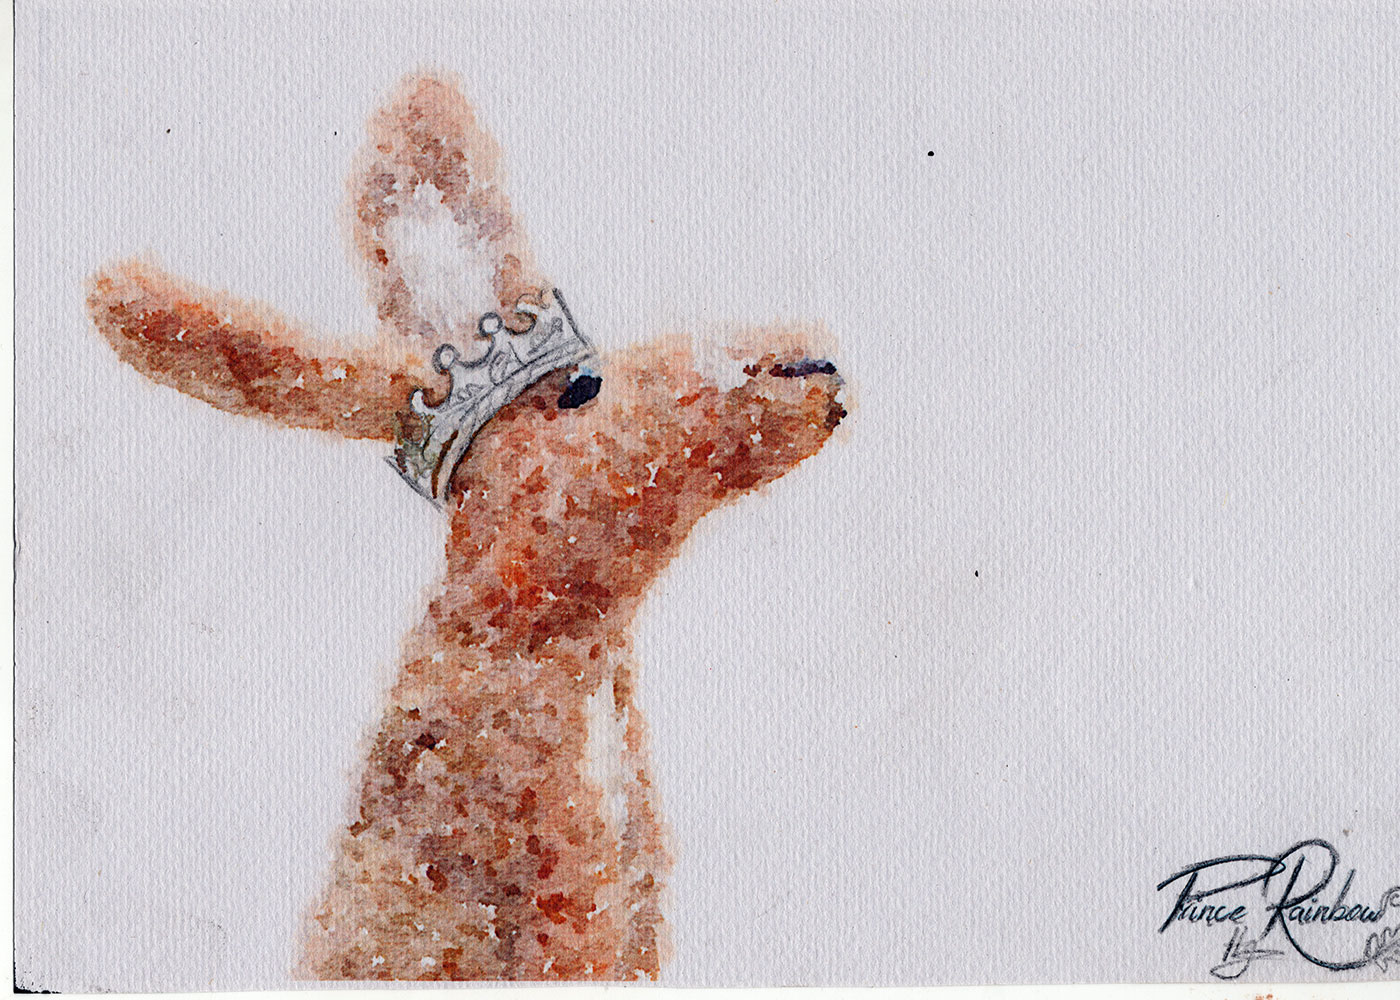 Hand felted brown hare with sterling silver crown recycled from a 100 year old silver coin